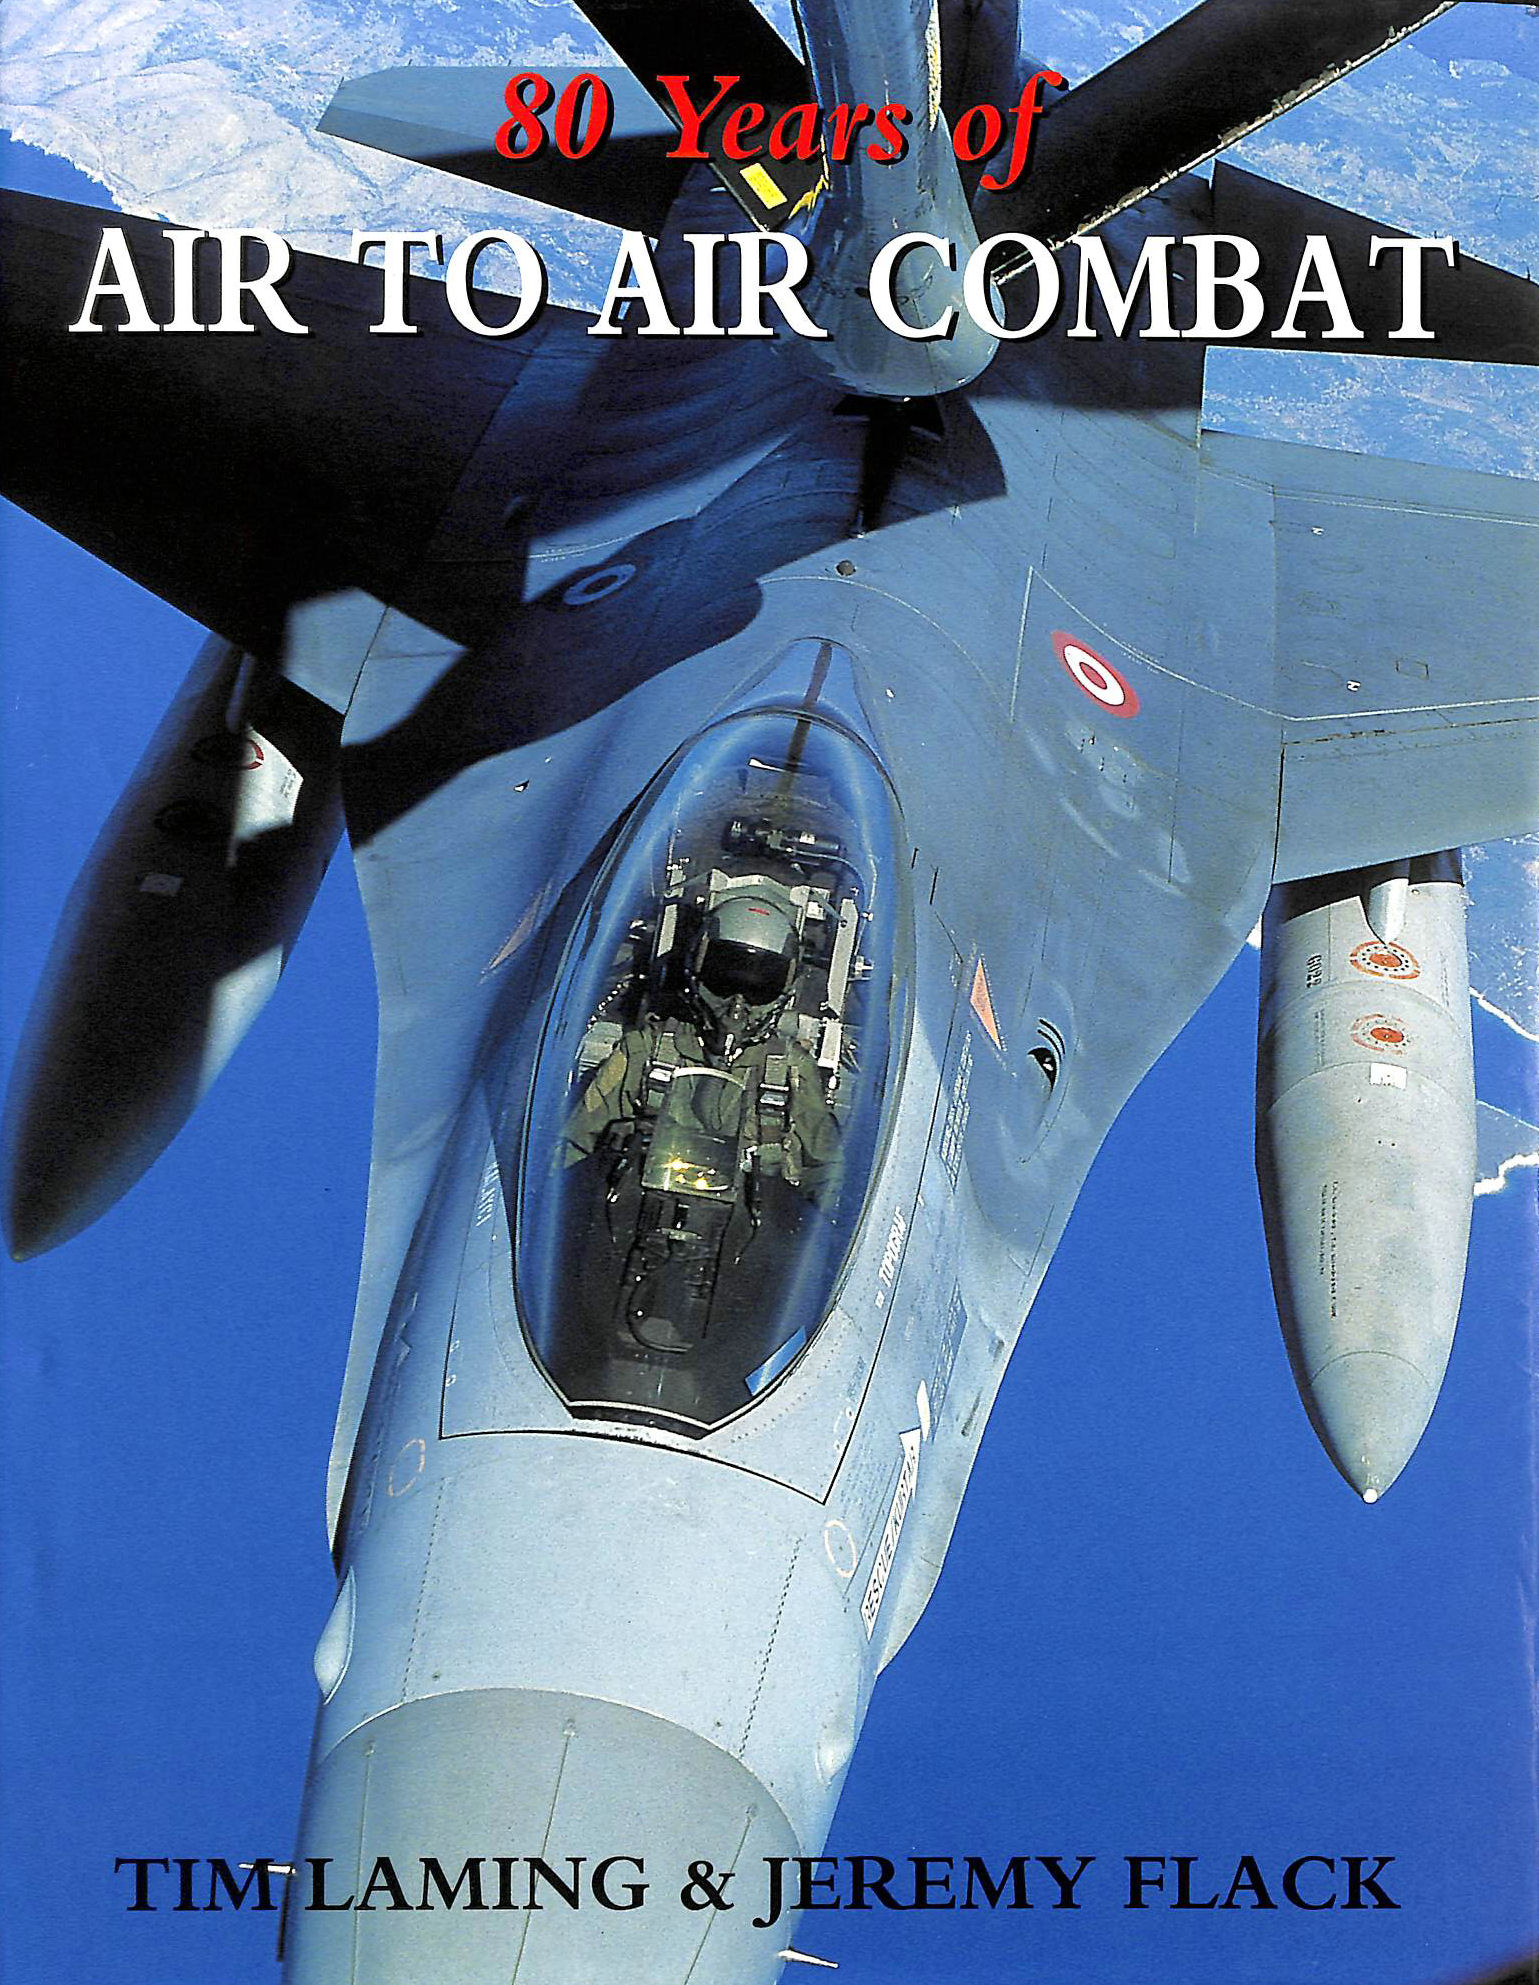 Image for 80 YEARS OF AIR TO AIR COMBAT